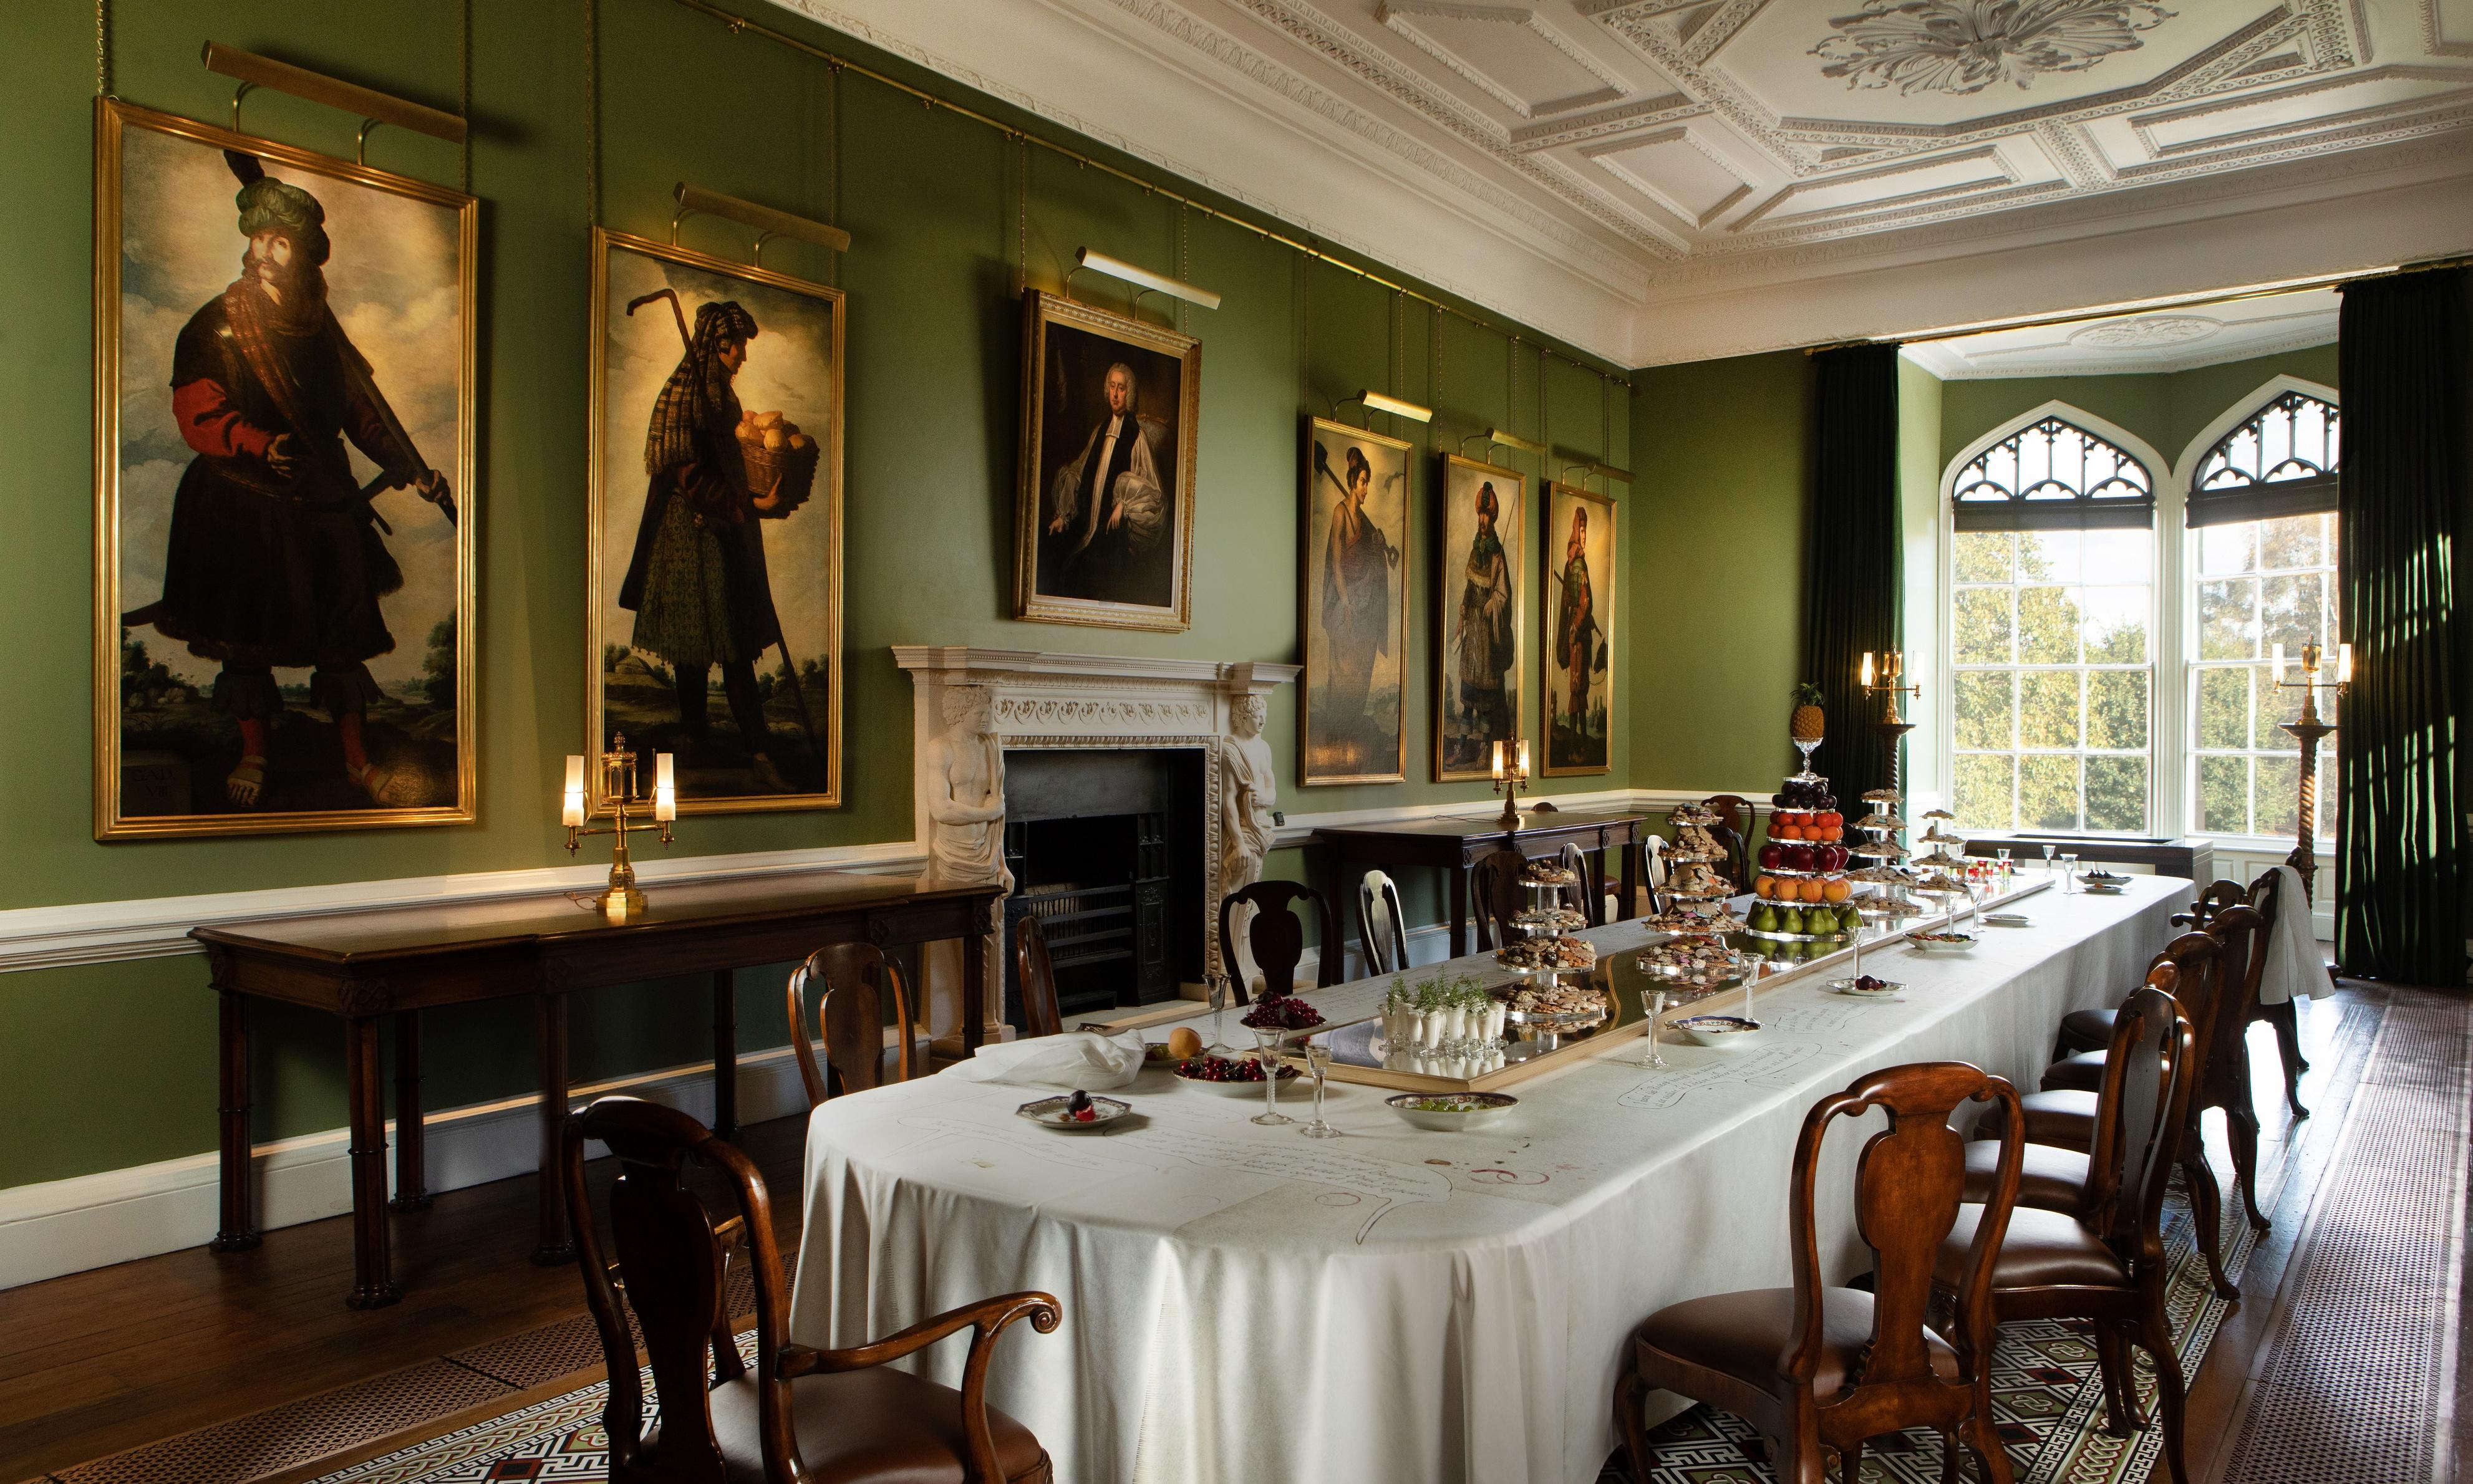 Auckland Castle has a long tradition of hospitality